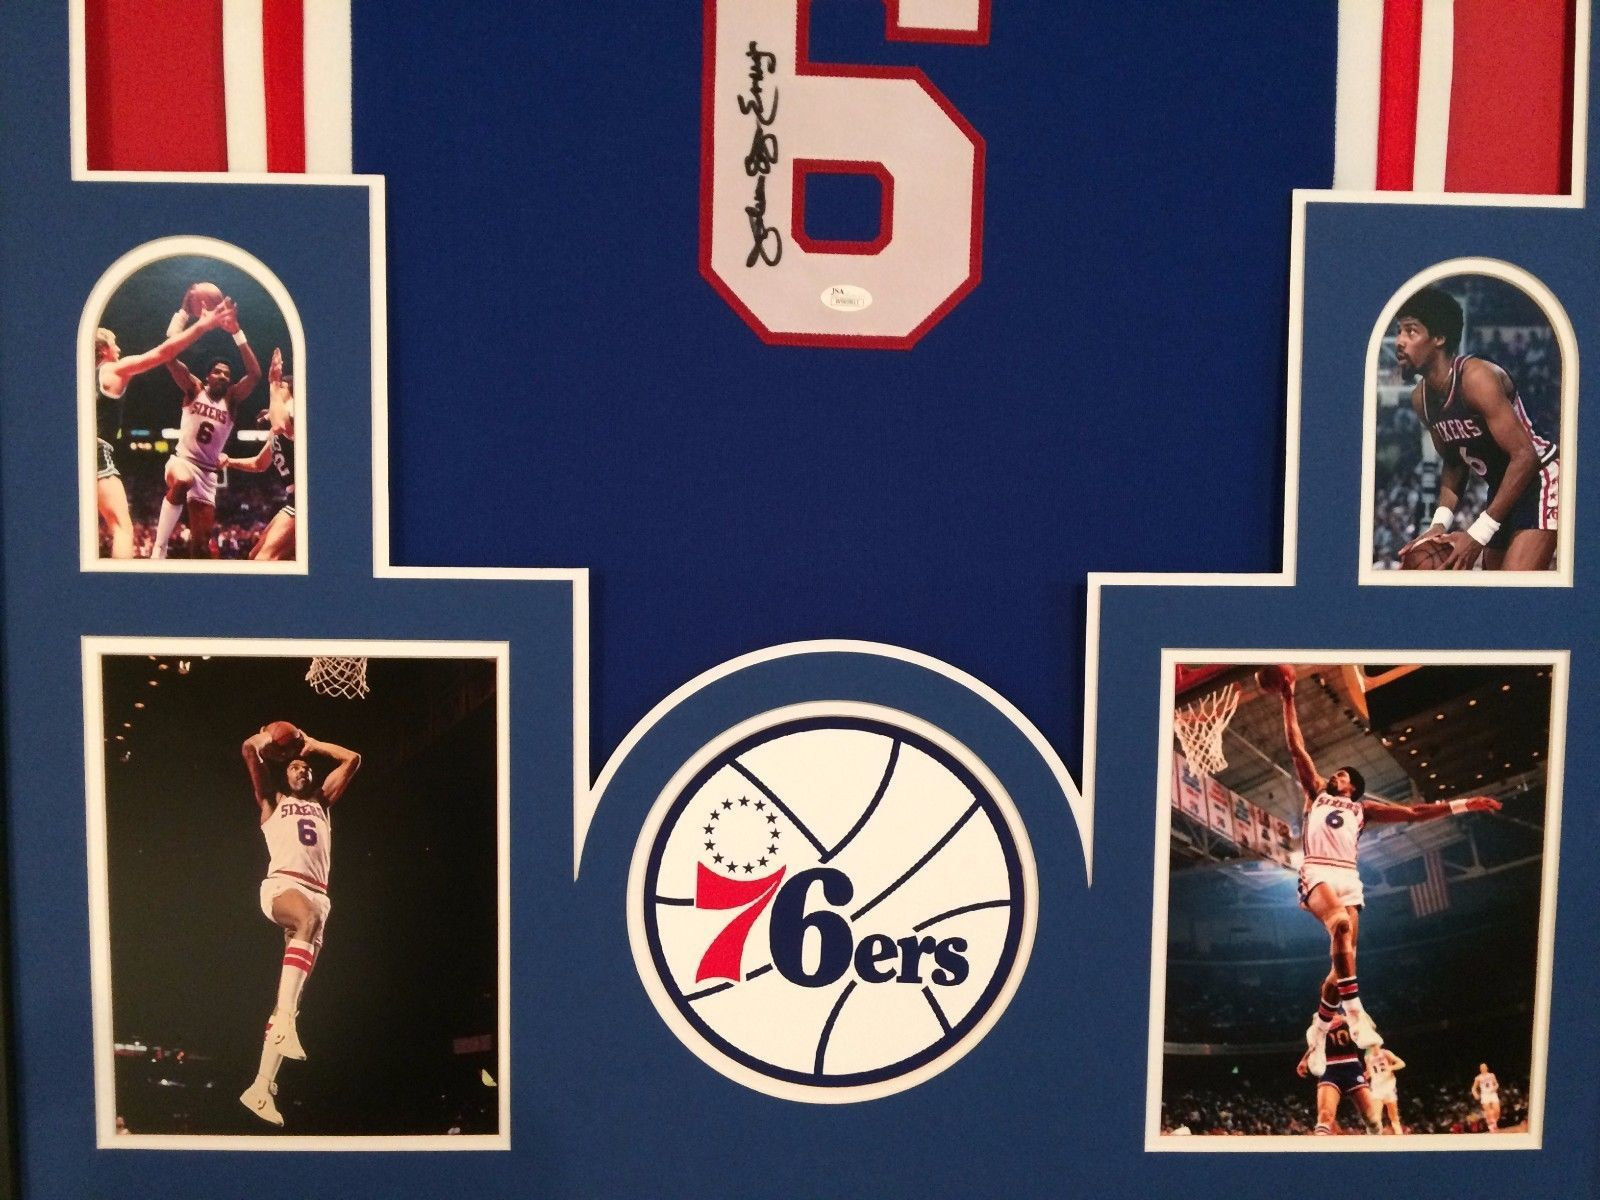 FRAMED JULIUS ERVING DR. J SIGNED PHILADELPHIA 76ERS JERSEY JSA W AUTHENTICATED